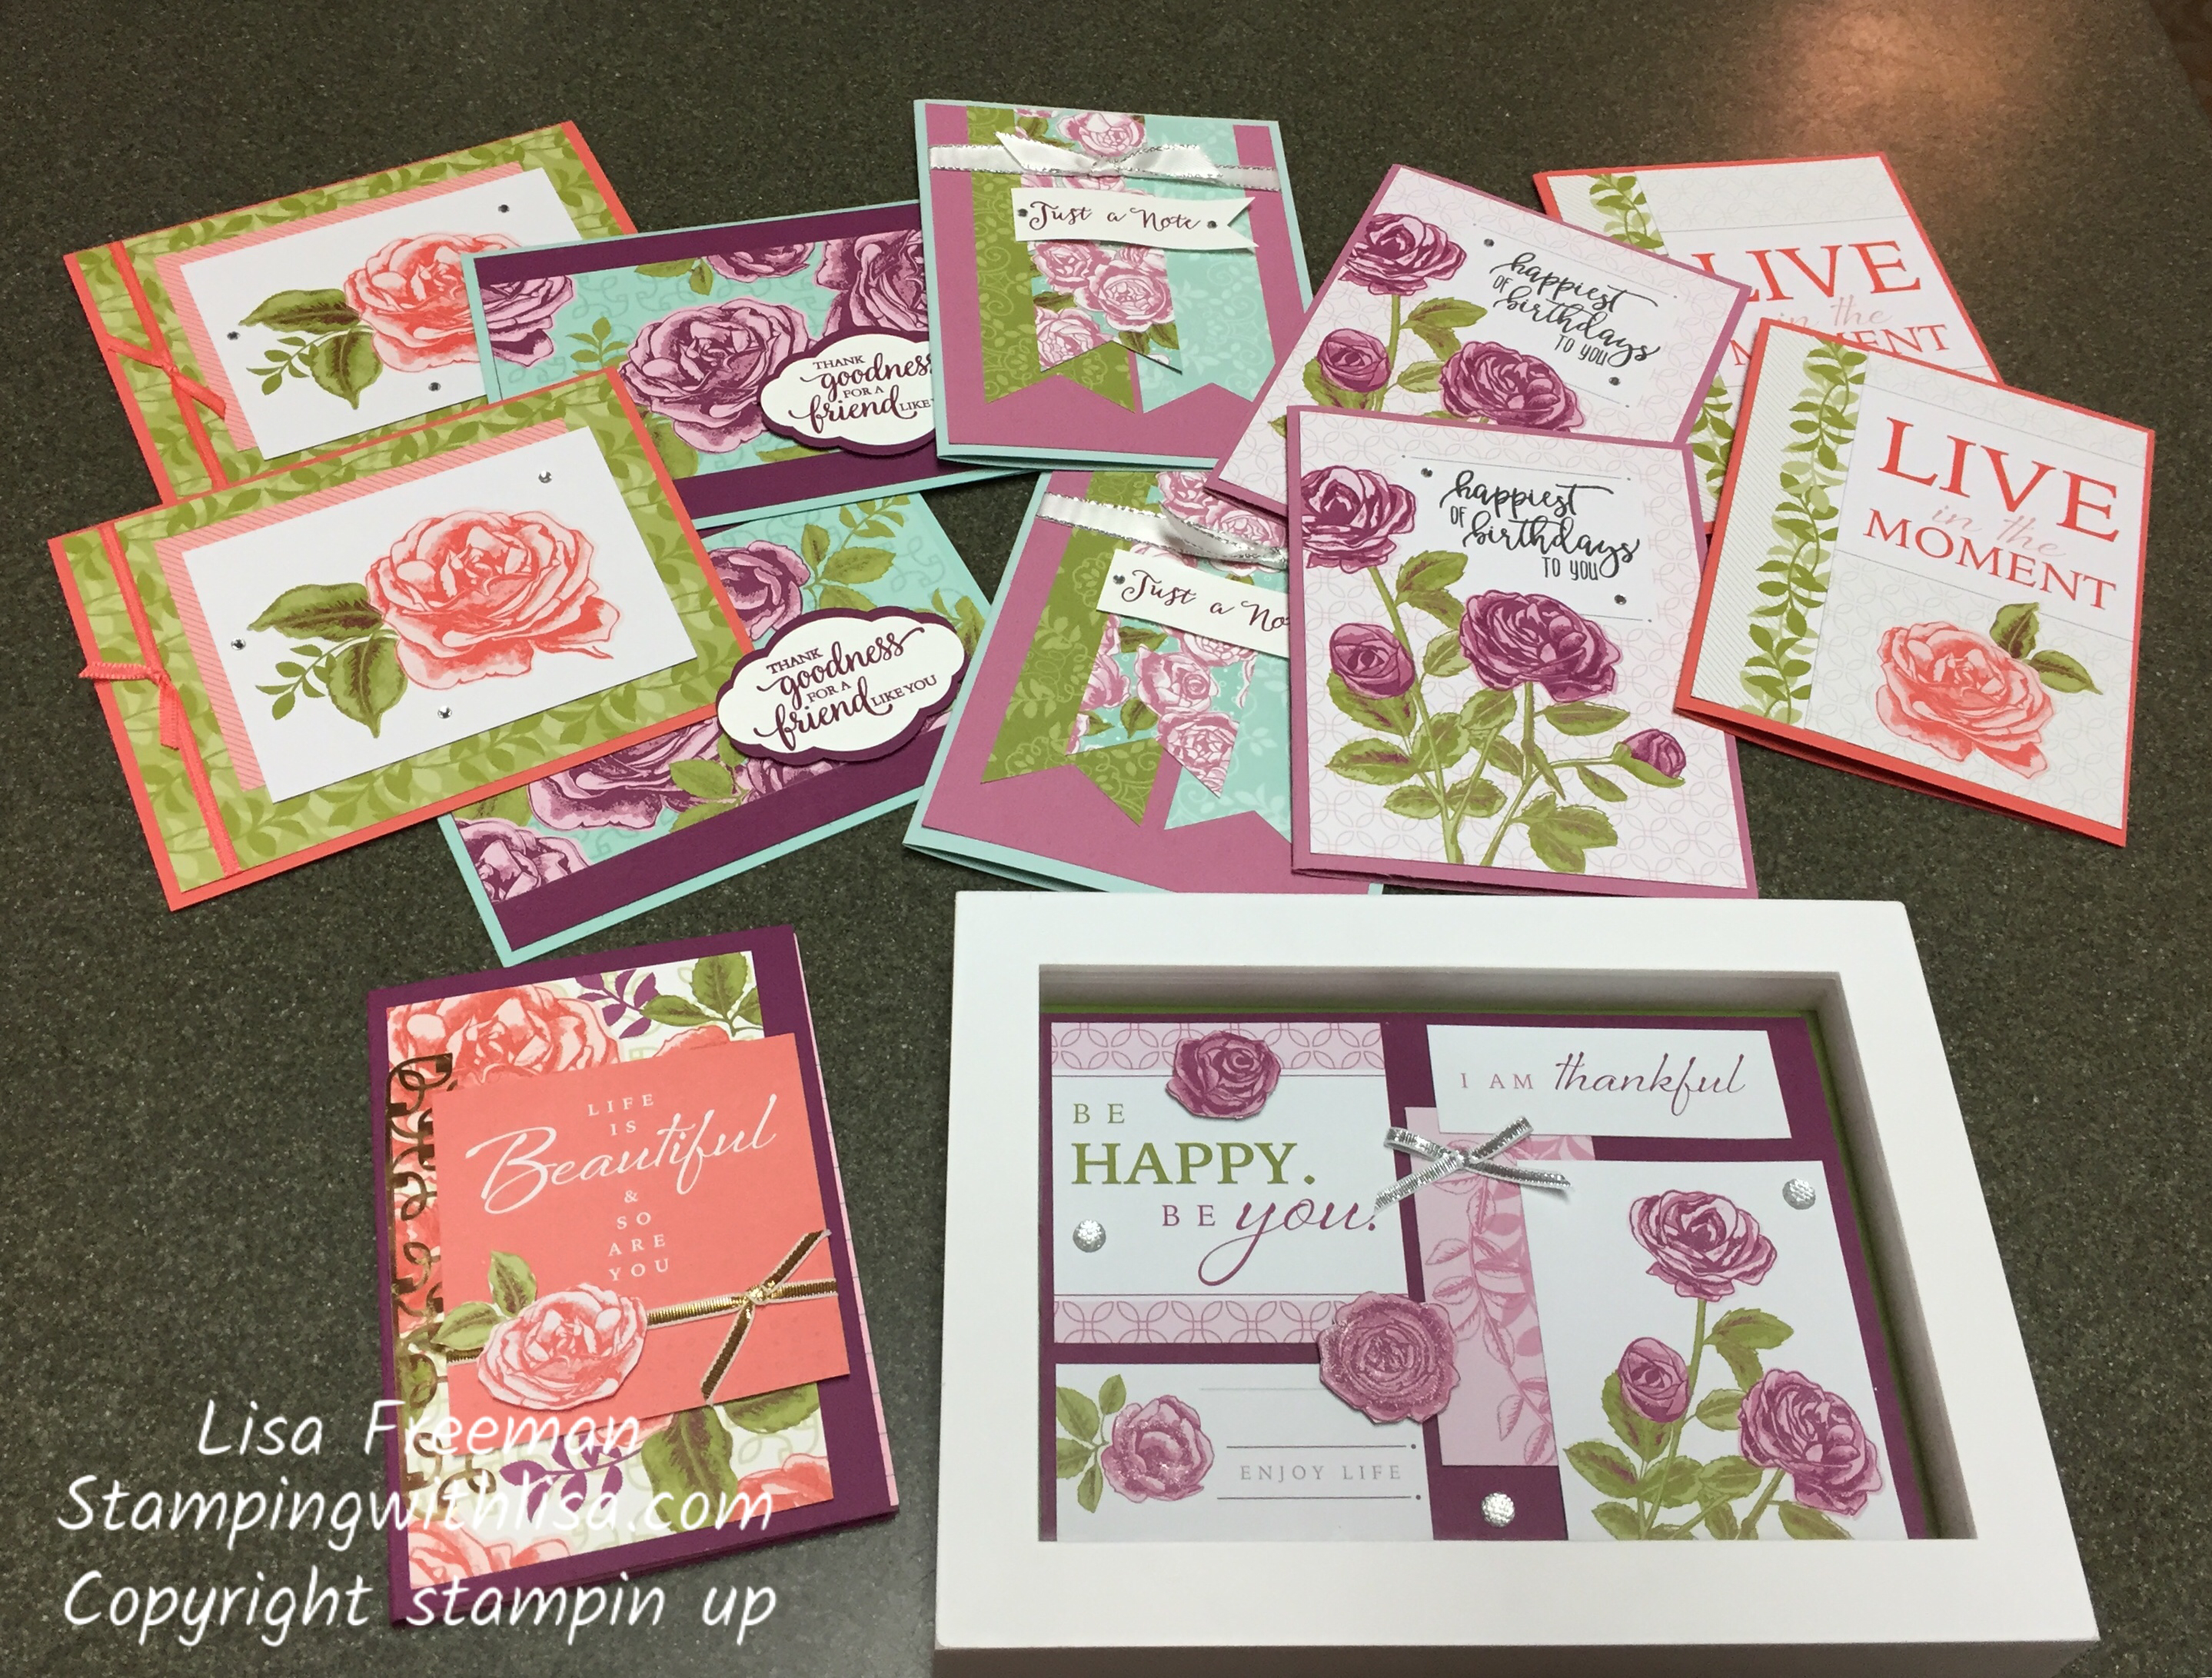 Petal Garden Memories and More Kit! WOW!